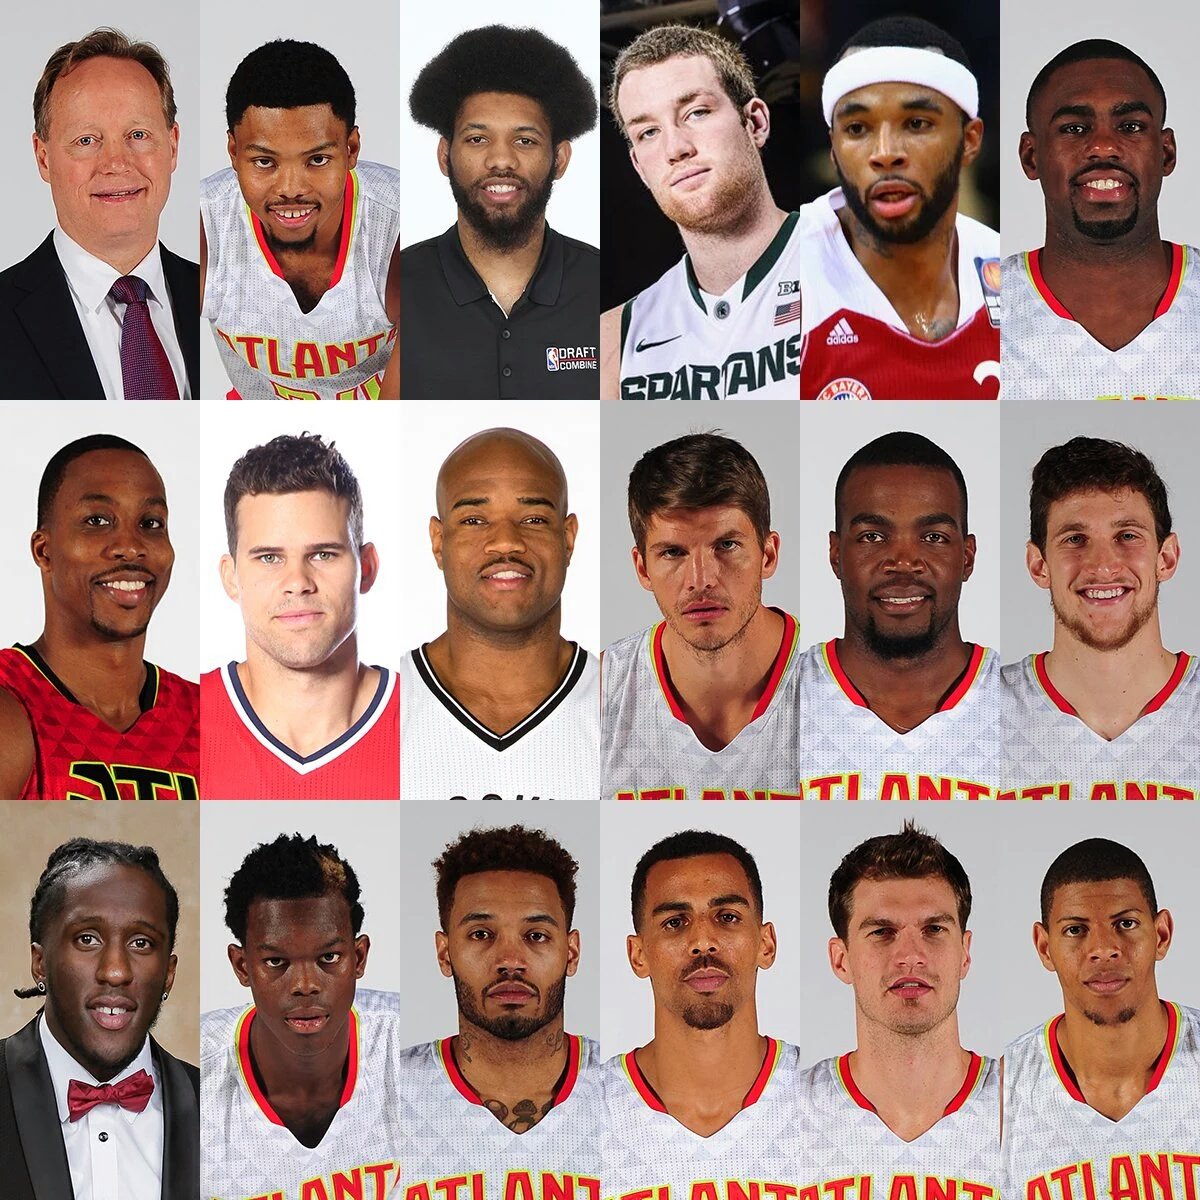 Chuck Dougherty On Twitter The Atlanta Hawks Roster Kyle Korver Looks Like He Is Staring Into Your Soul Cosmis